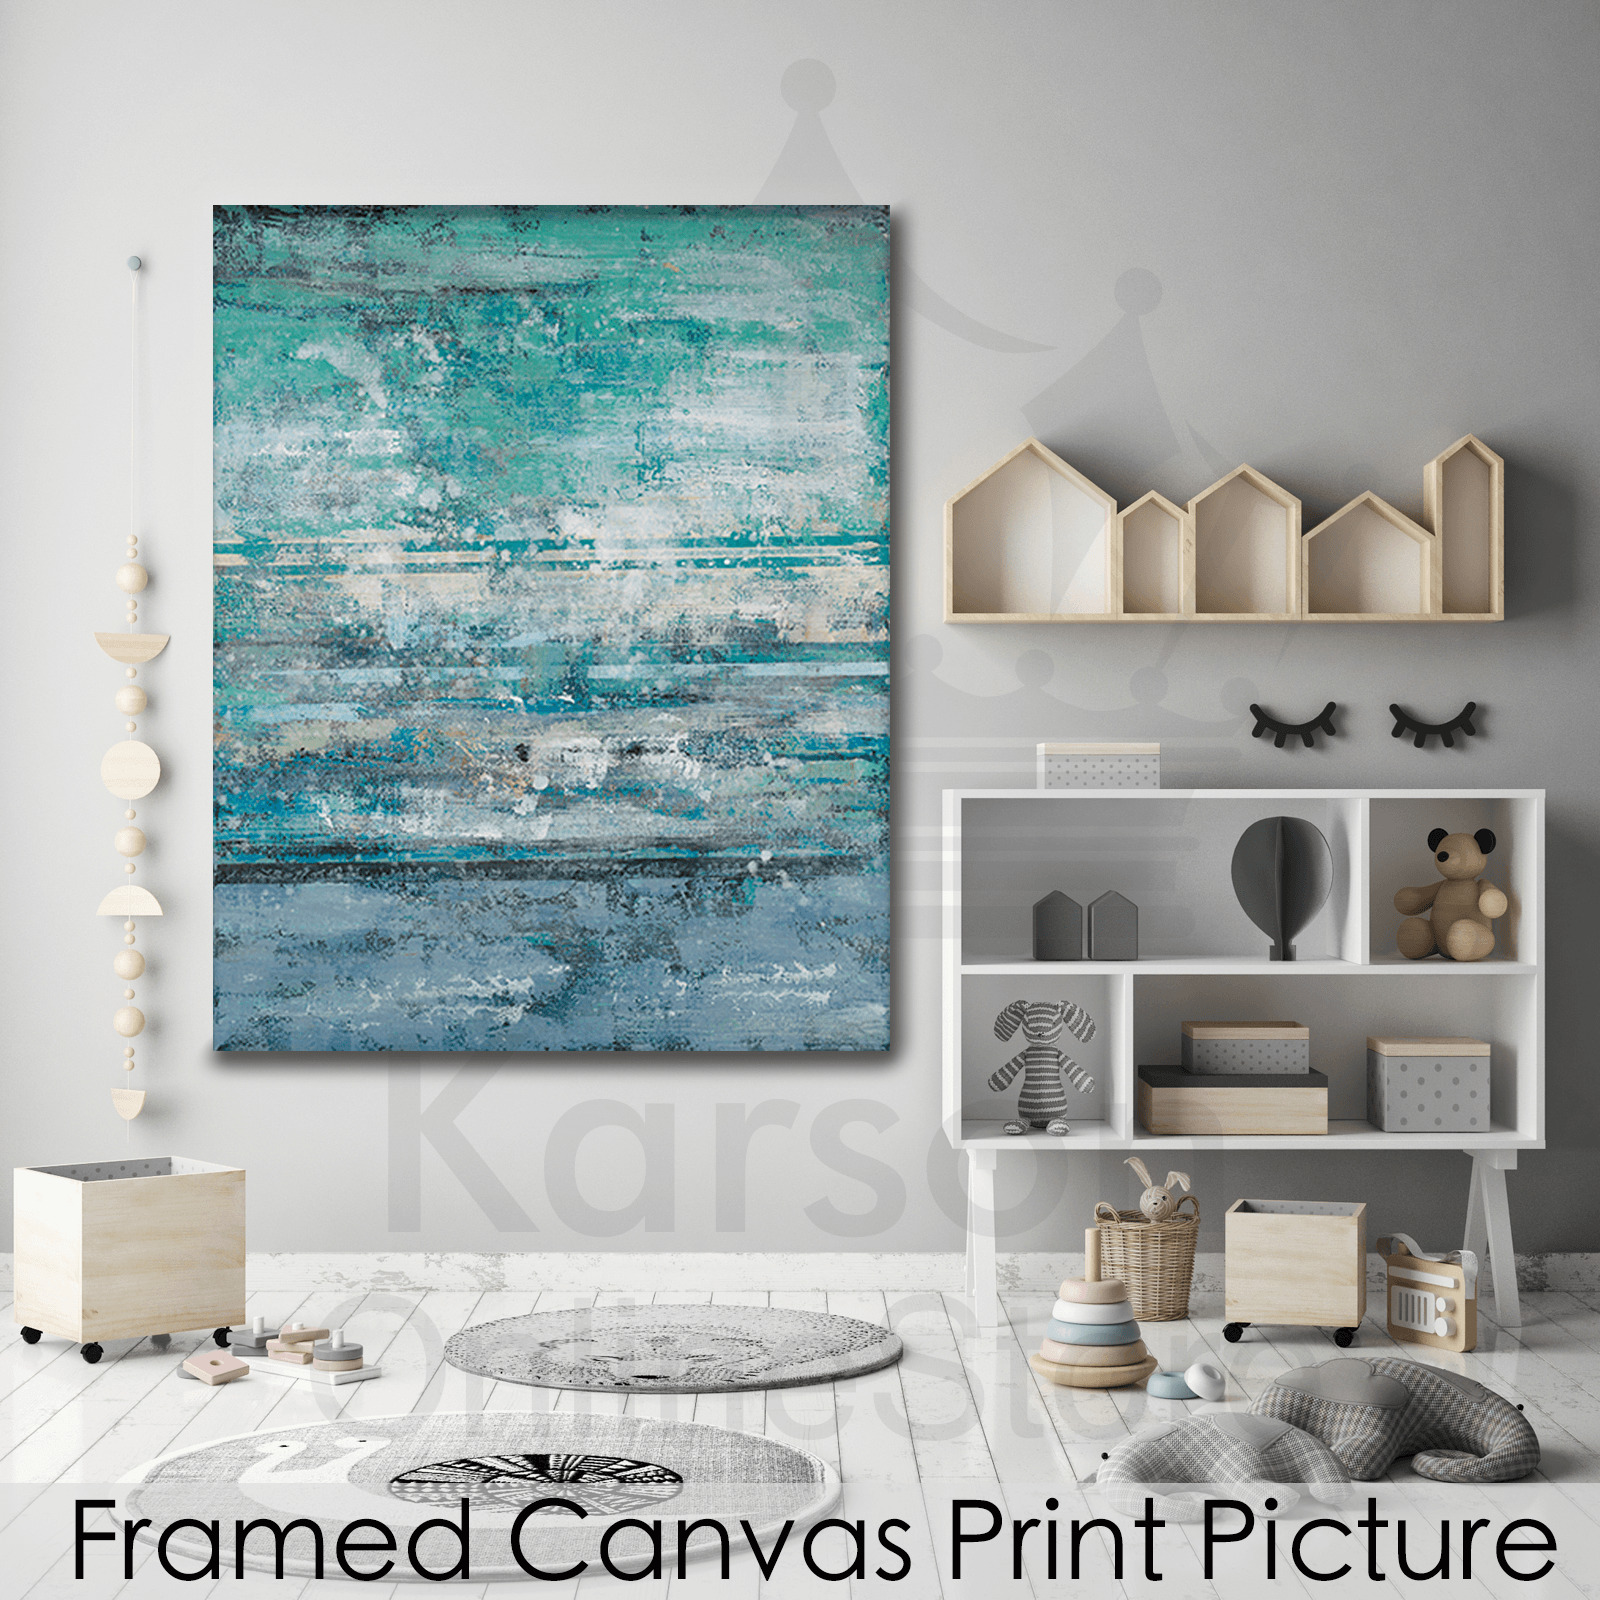 Blue Print Wall Decor : Blue abstract stretched canvas print picture hang wall